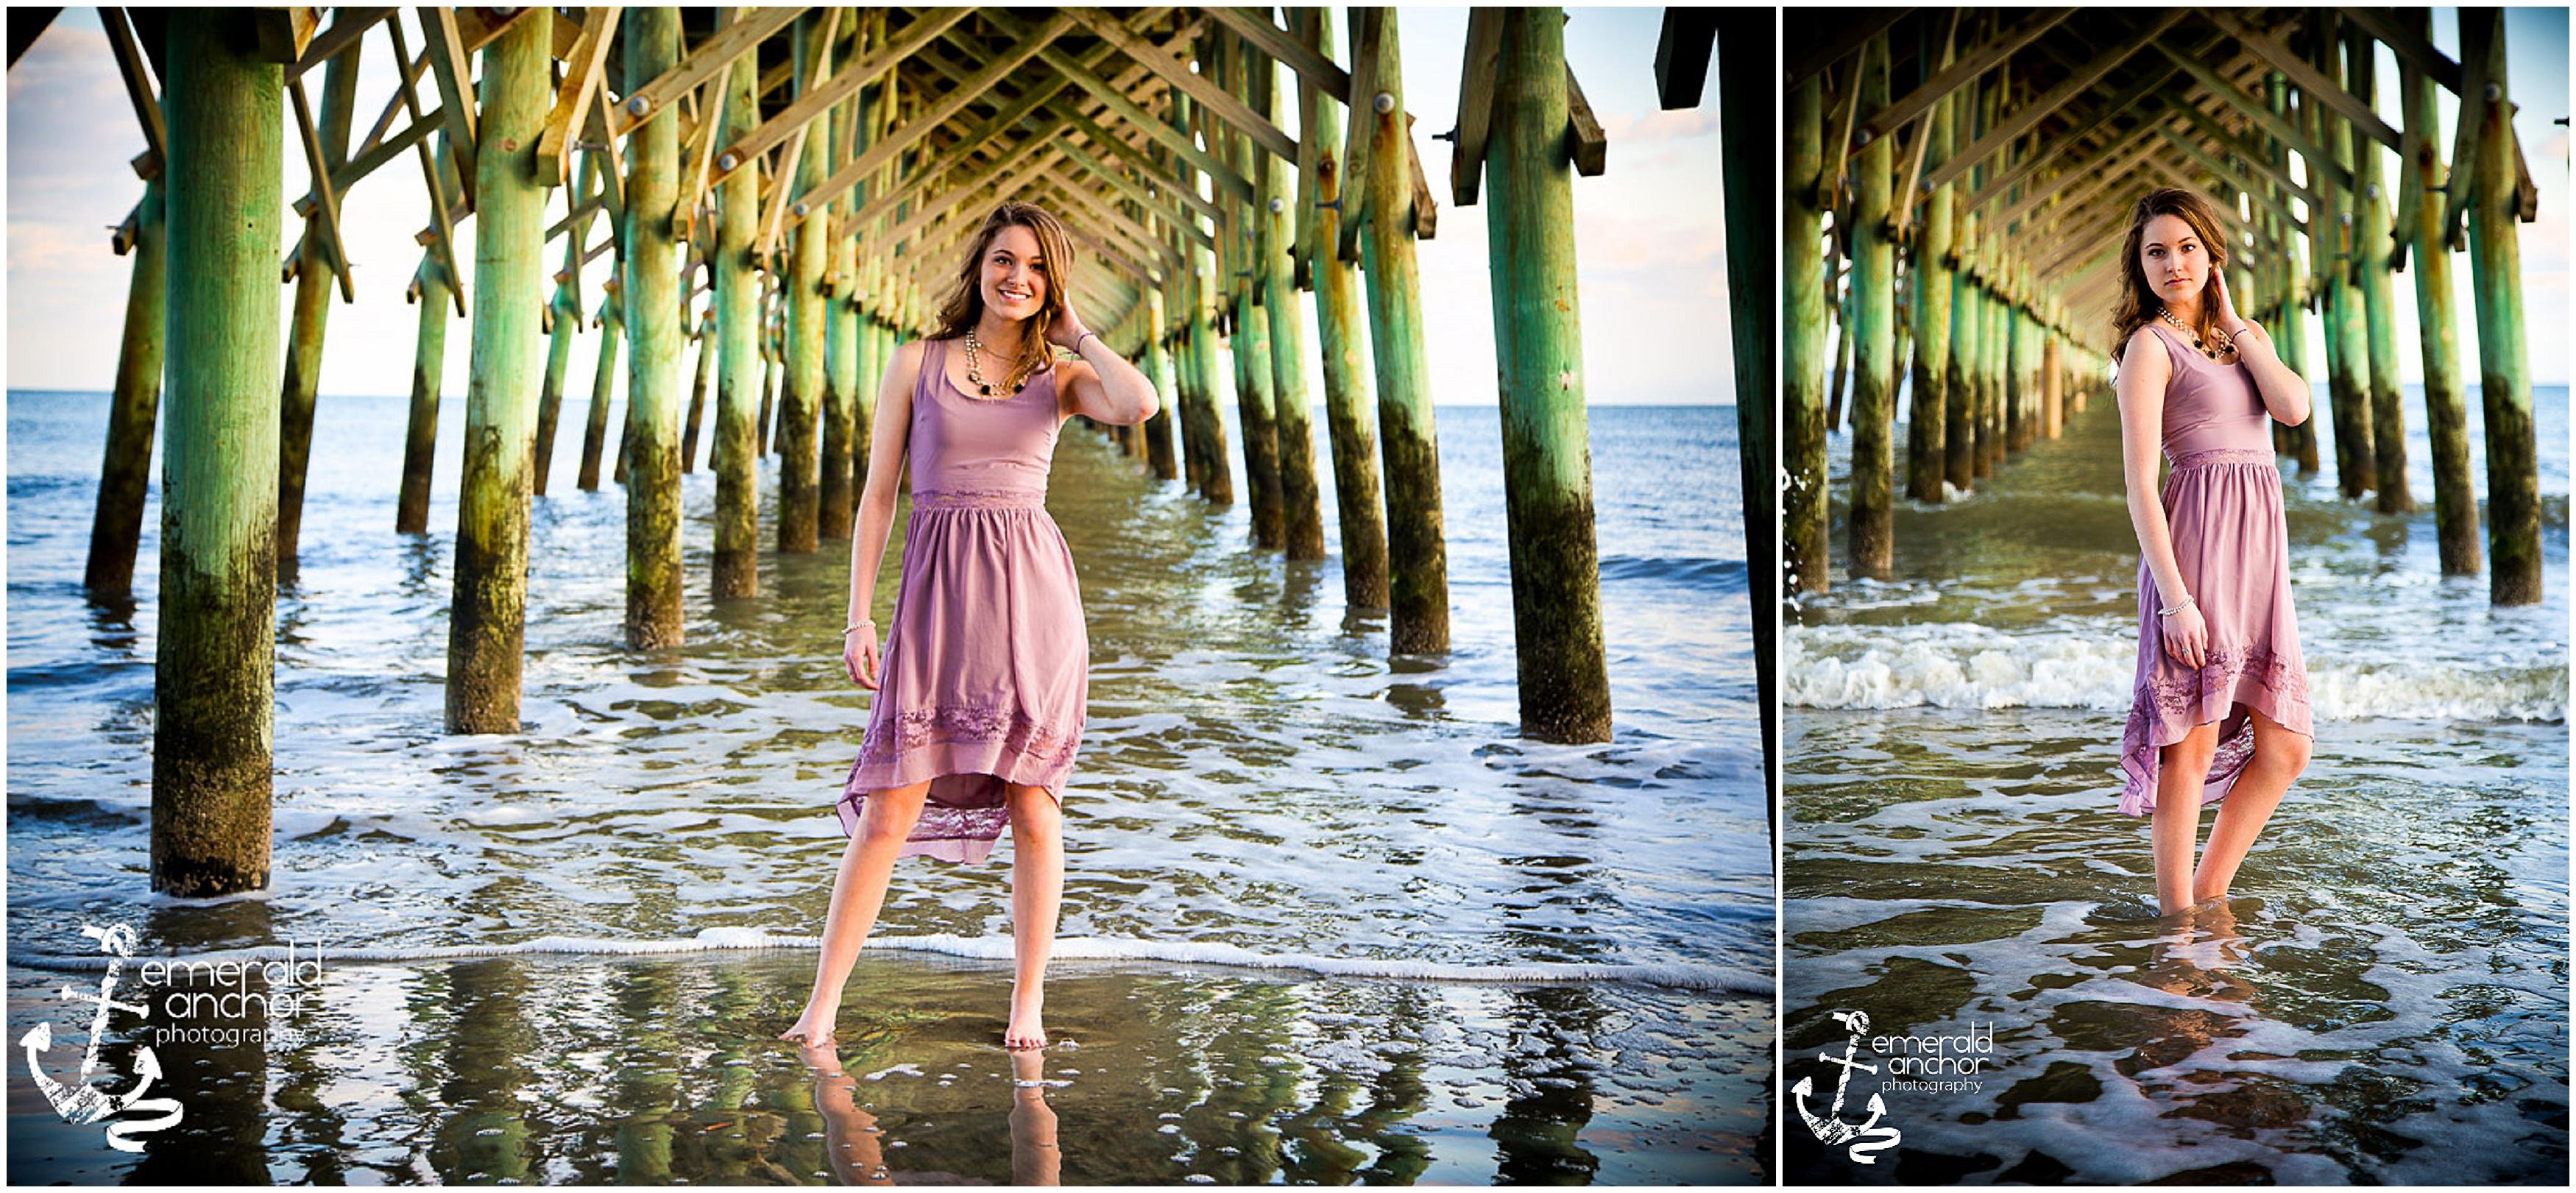 Emerald Anchor Photography Senior Portraits (13)